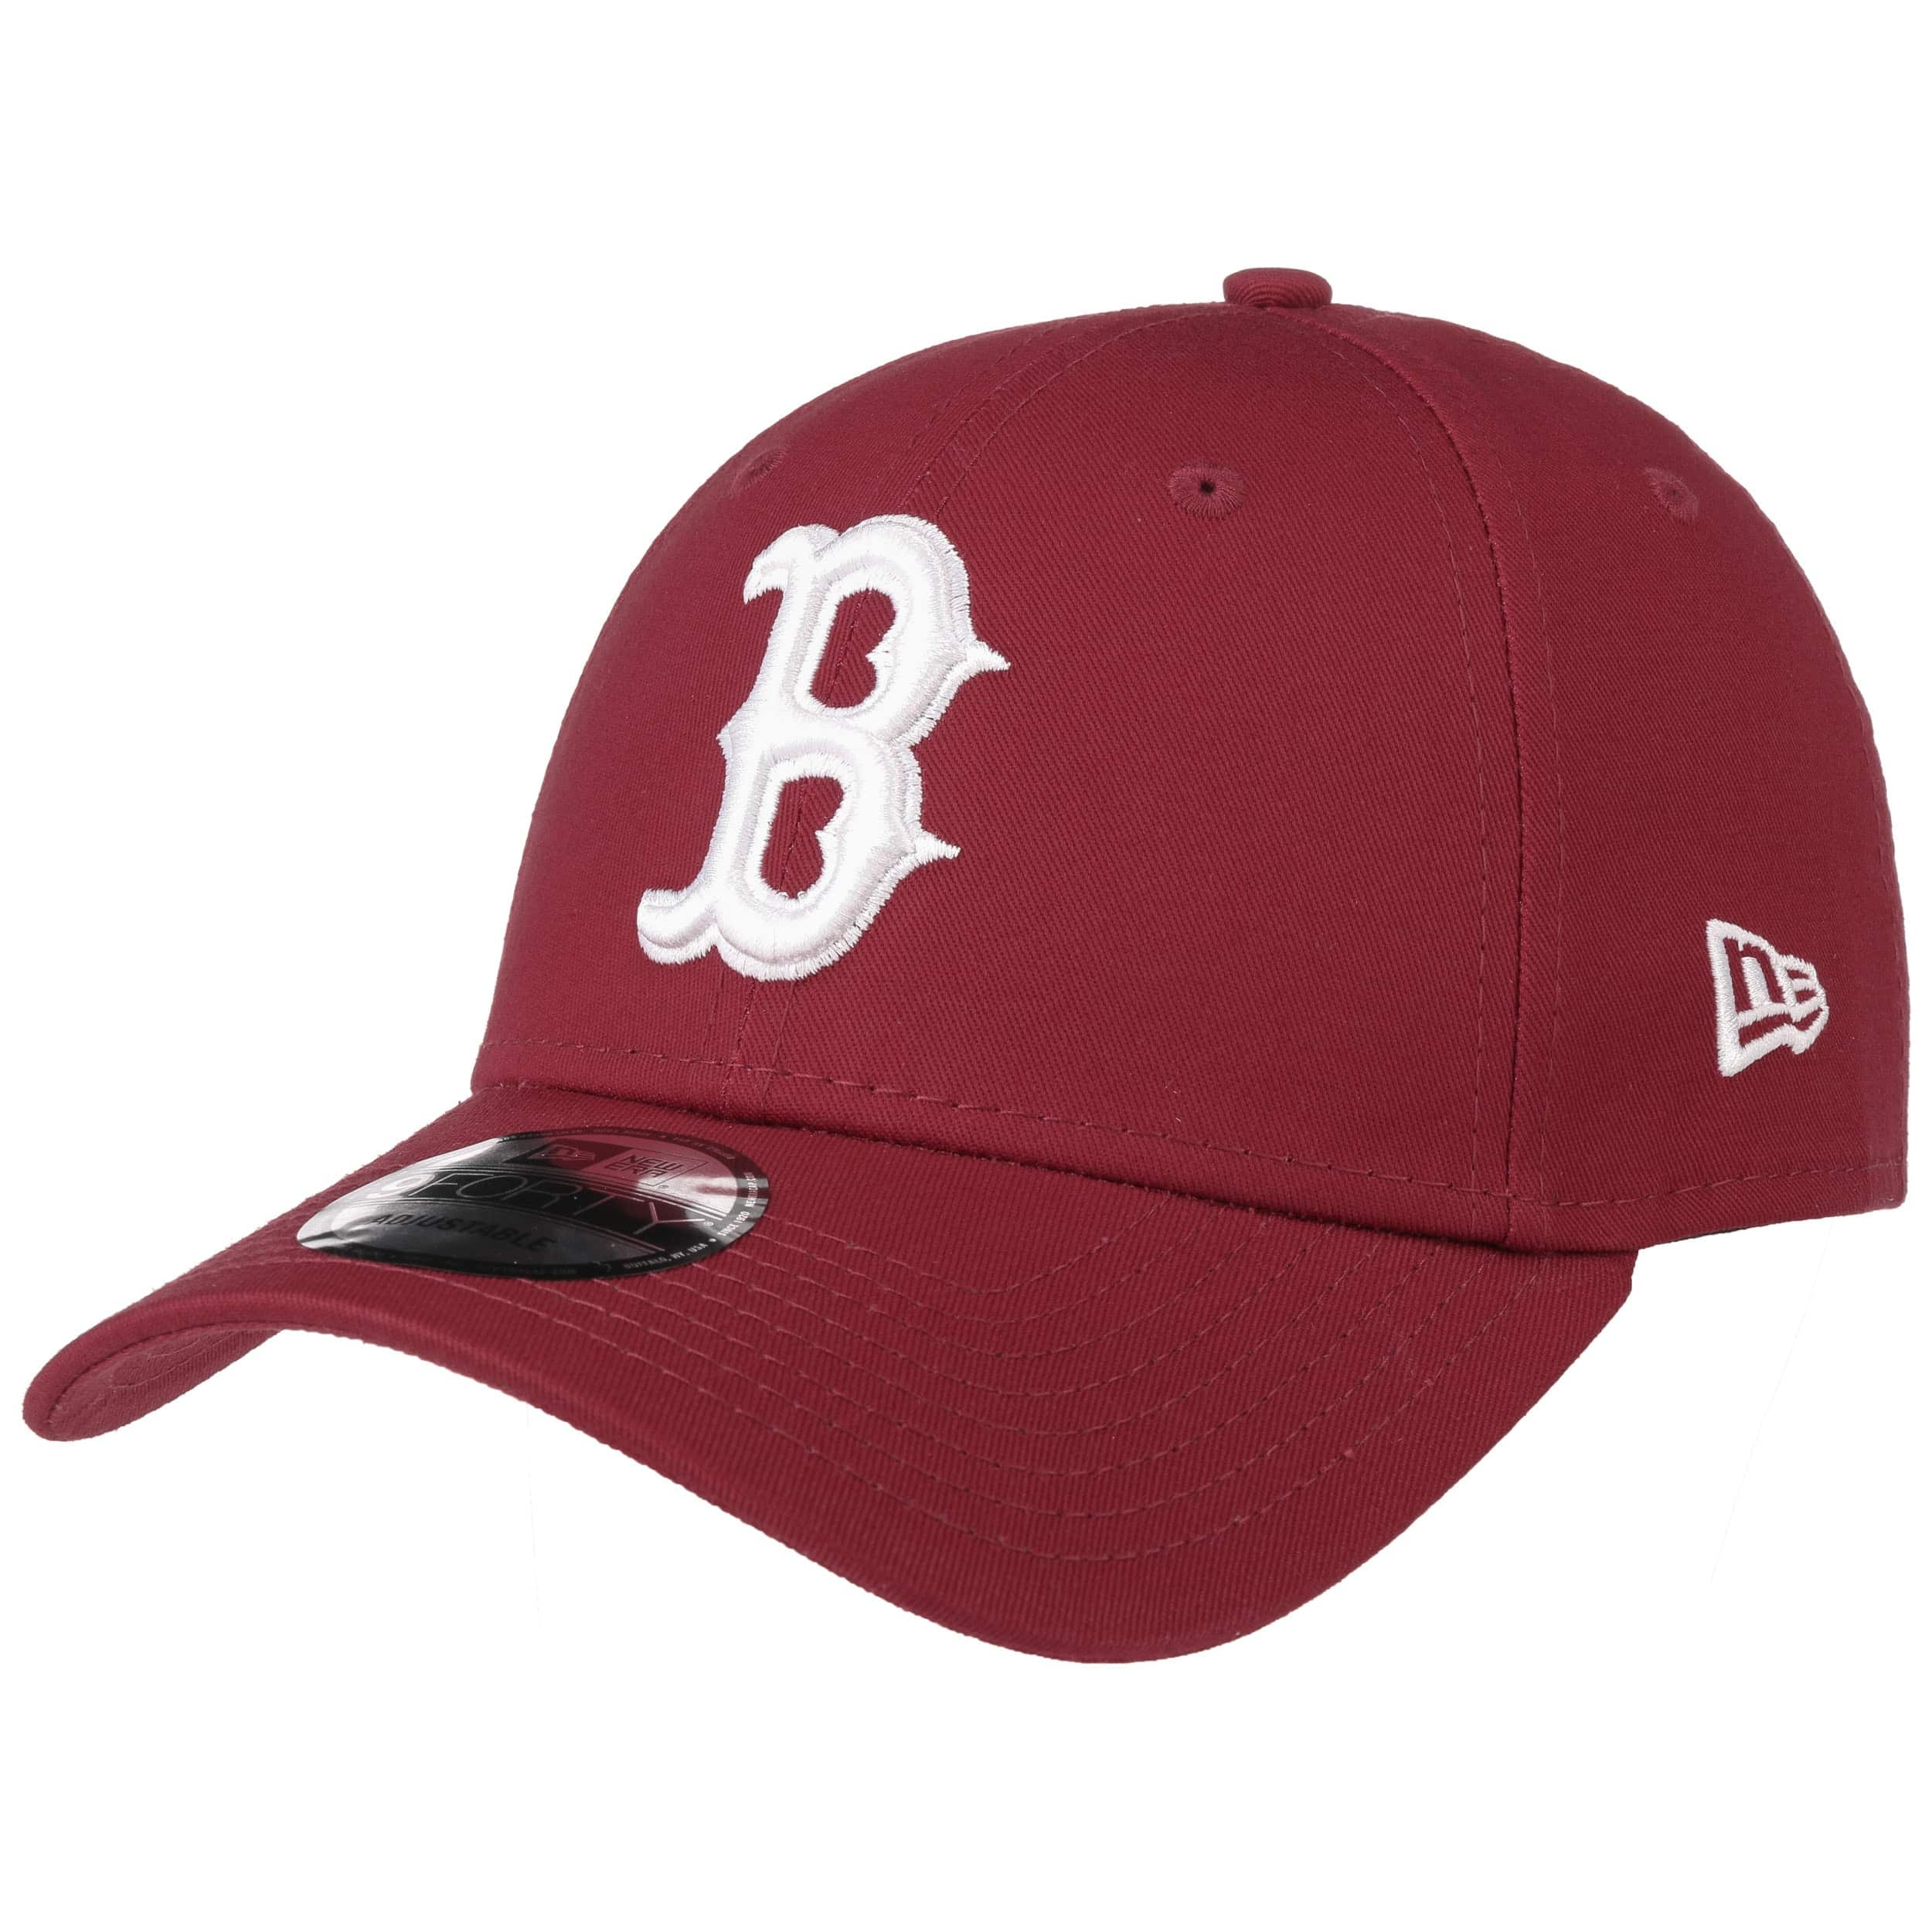 638655cd9c98 ... 9Forty League Ess Red Sox Cap by New Era - bordeaux 5